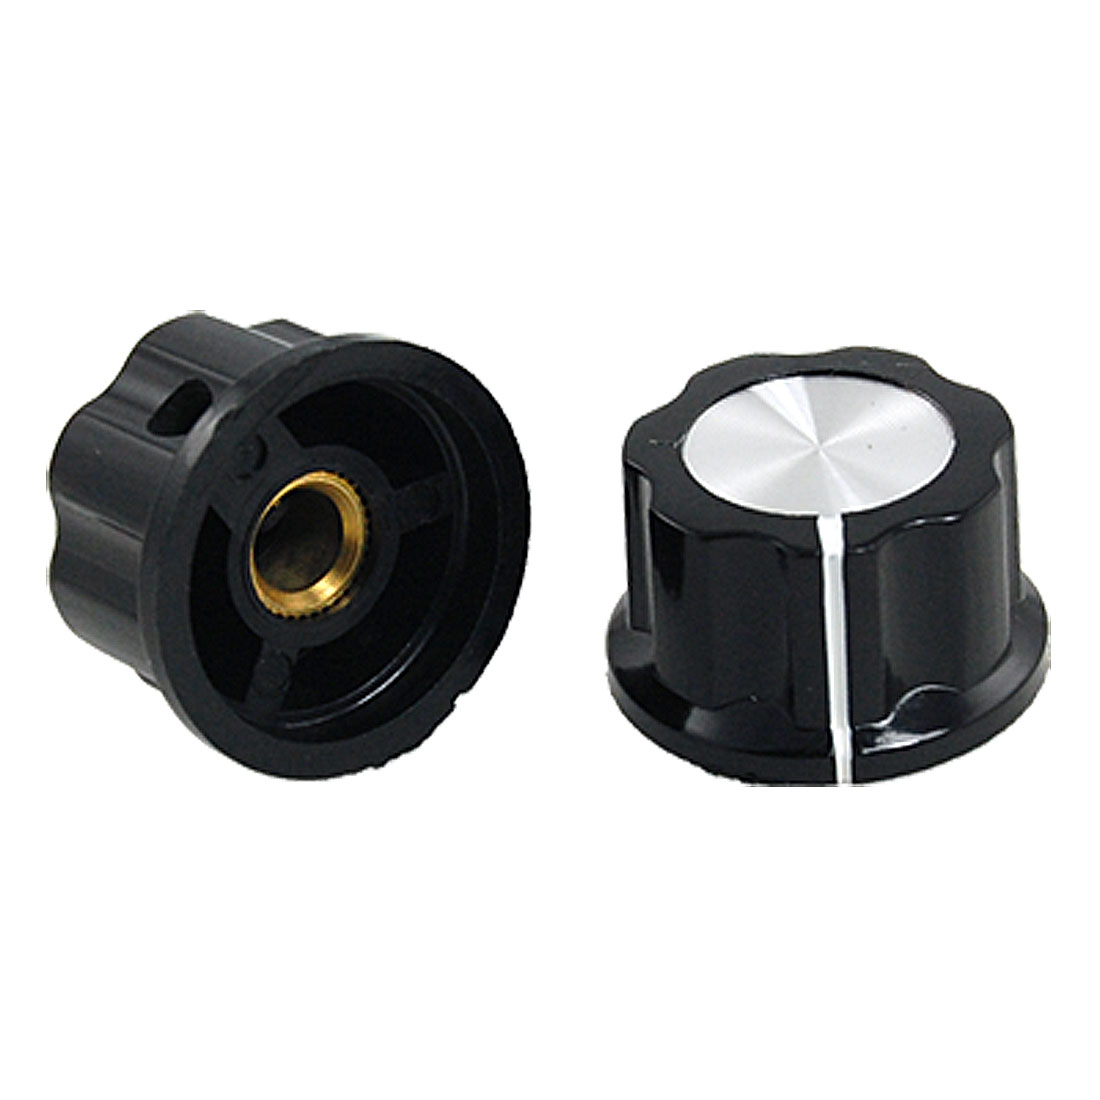 "2 X Black 7/8"" Plastic Potentiometer Volume Rotary Turning Knobs"